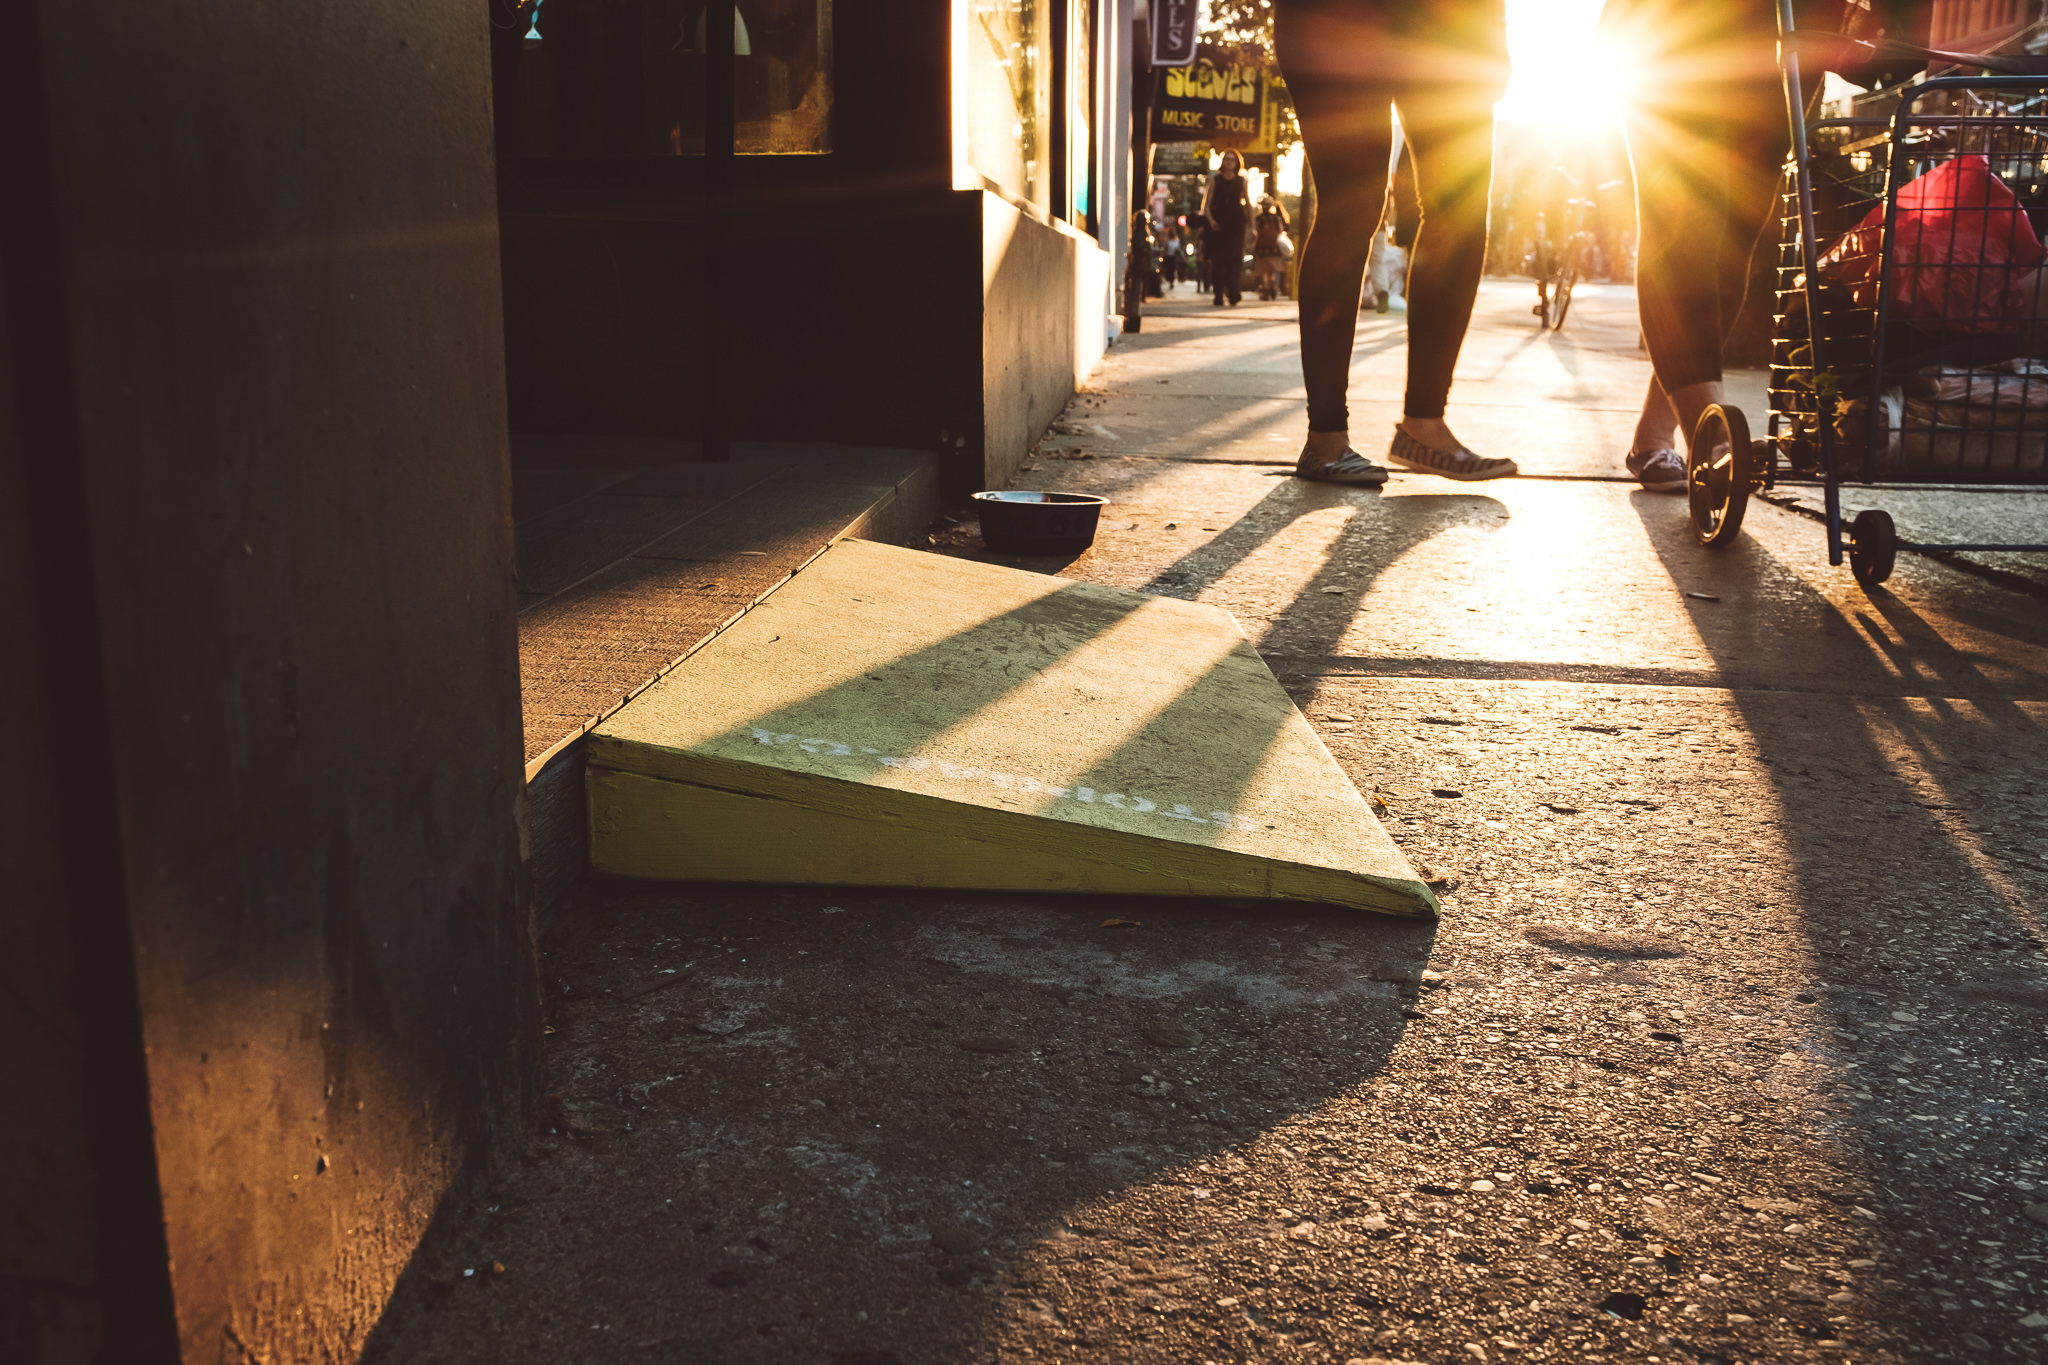 ...that builds and distributes mobile ramps in Toronto.